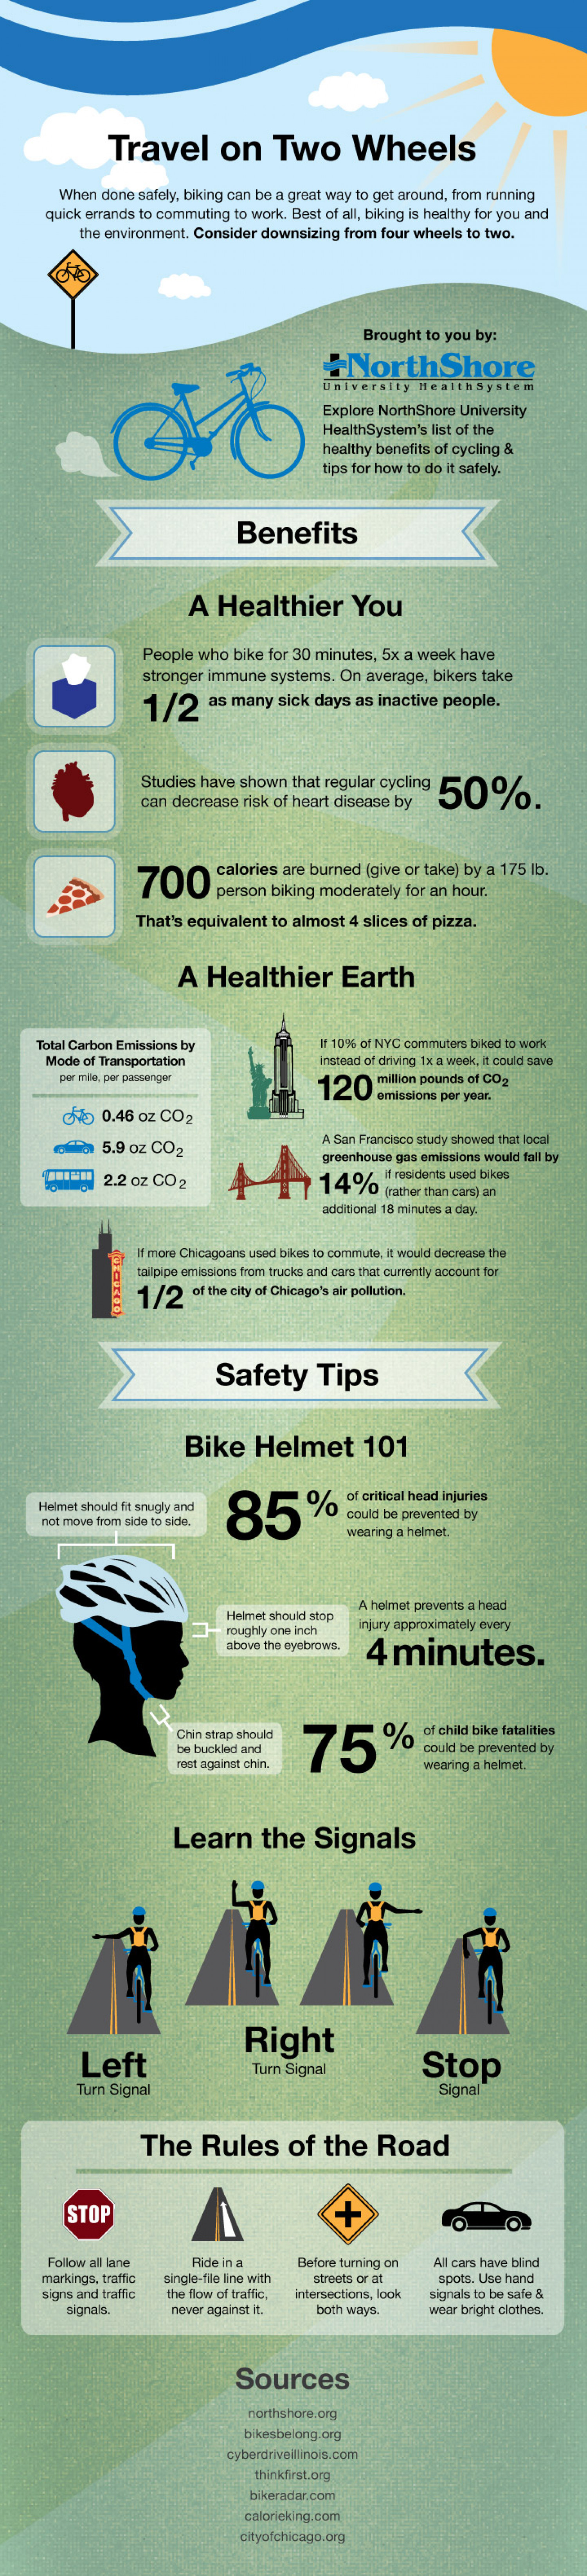 Travel on Two Wheels Infographic